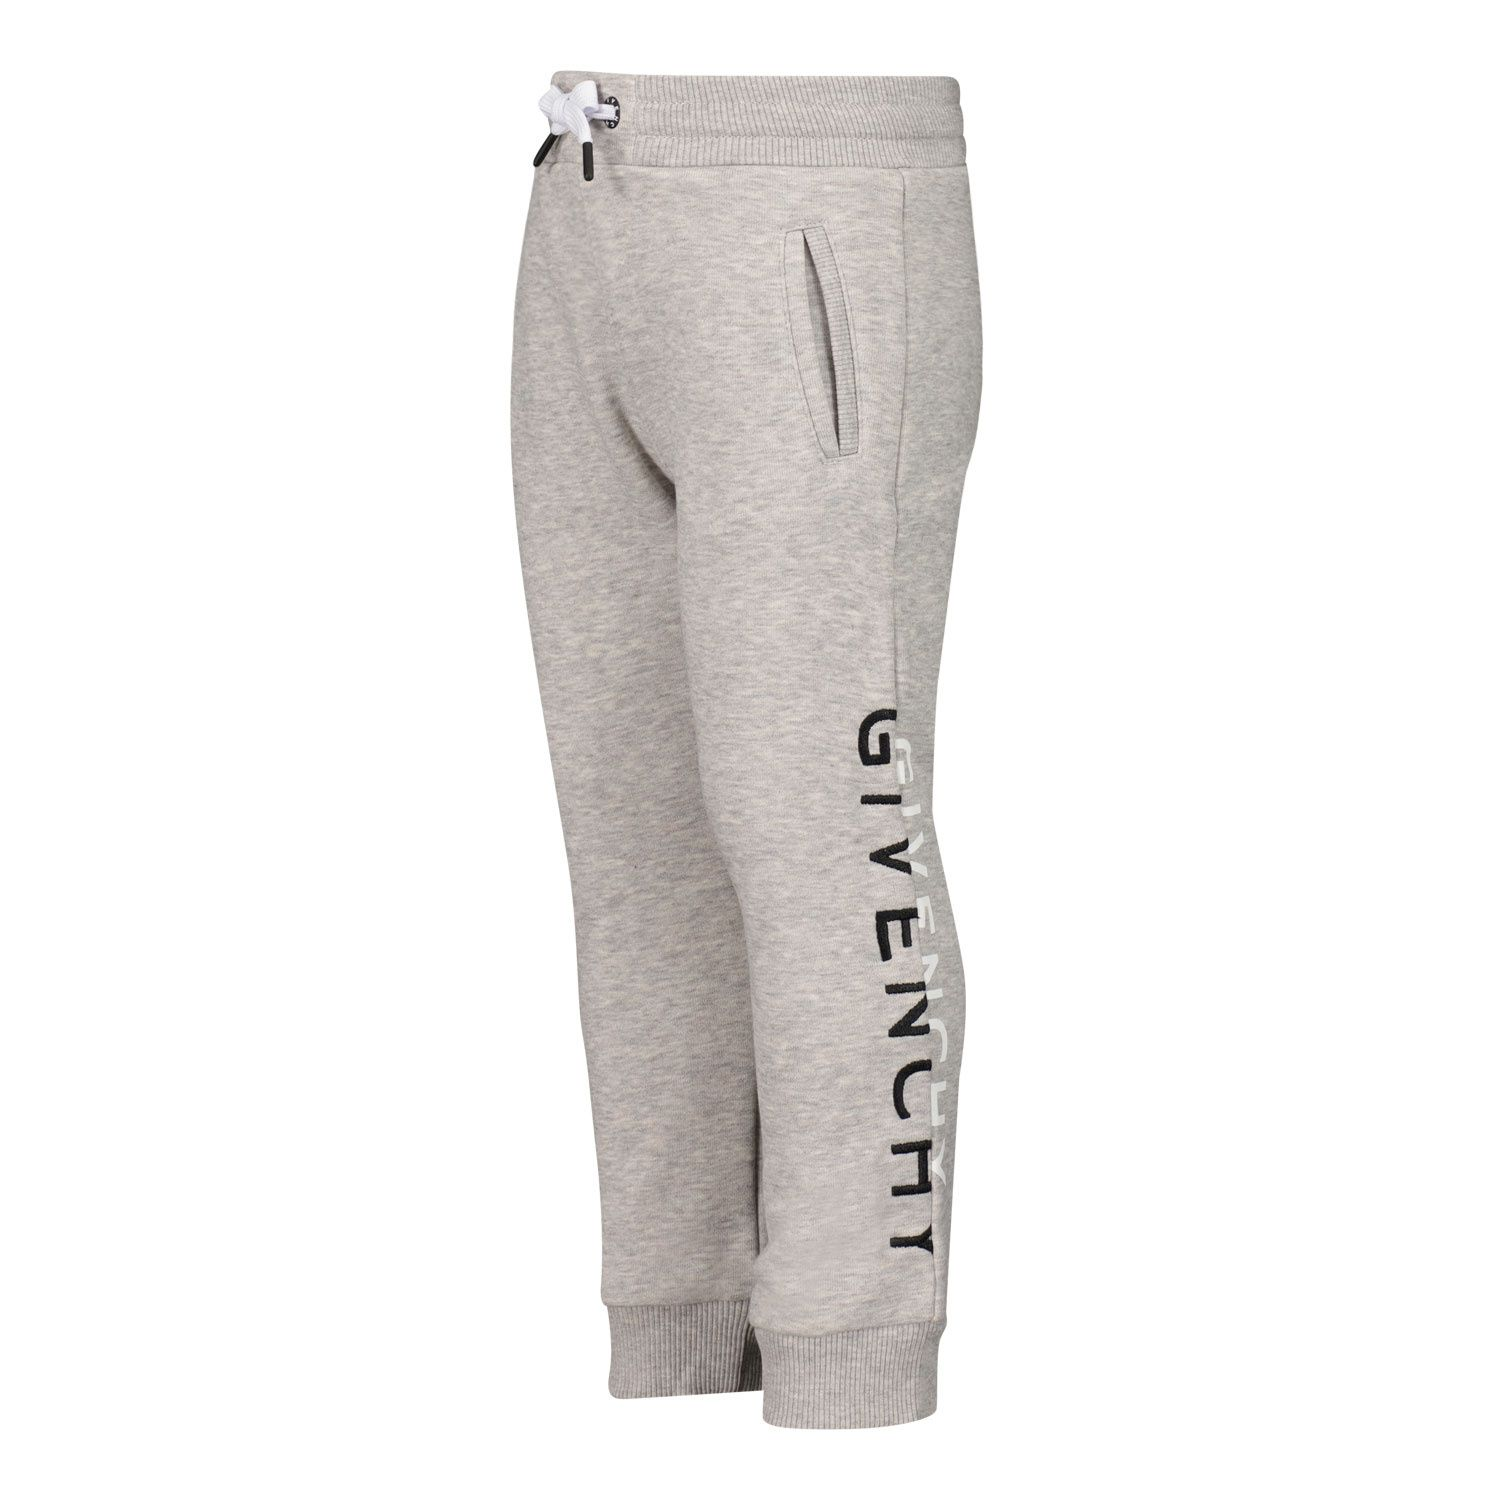 Picture of Givenchy H04113 baby pants grey